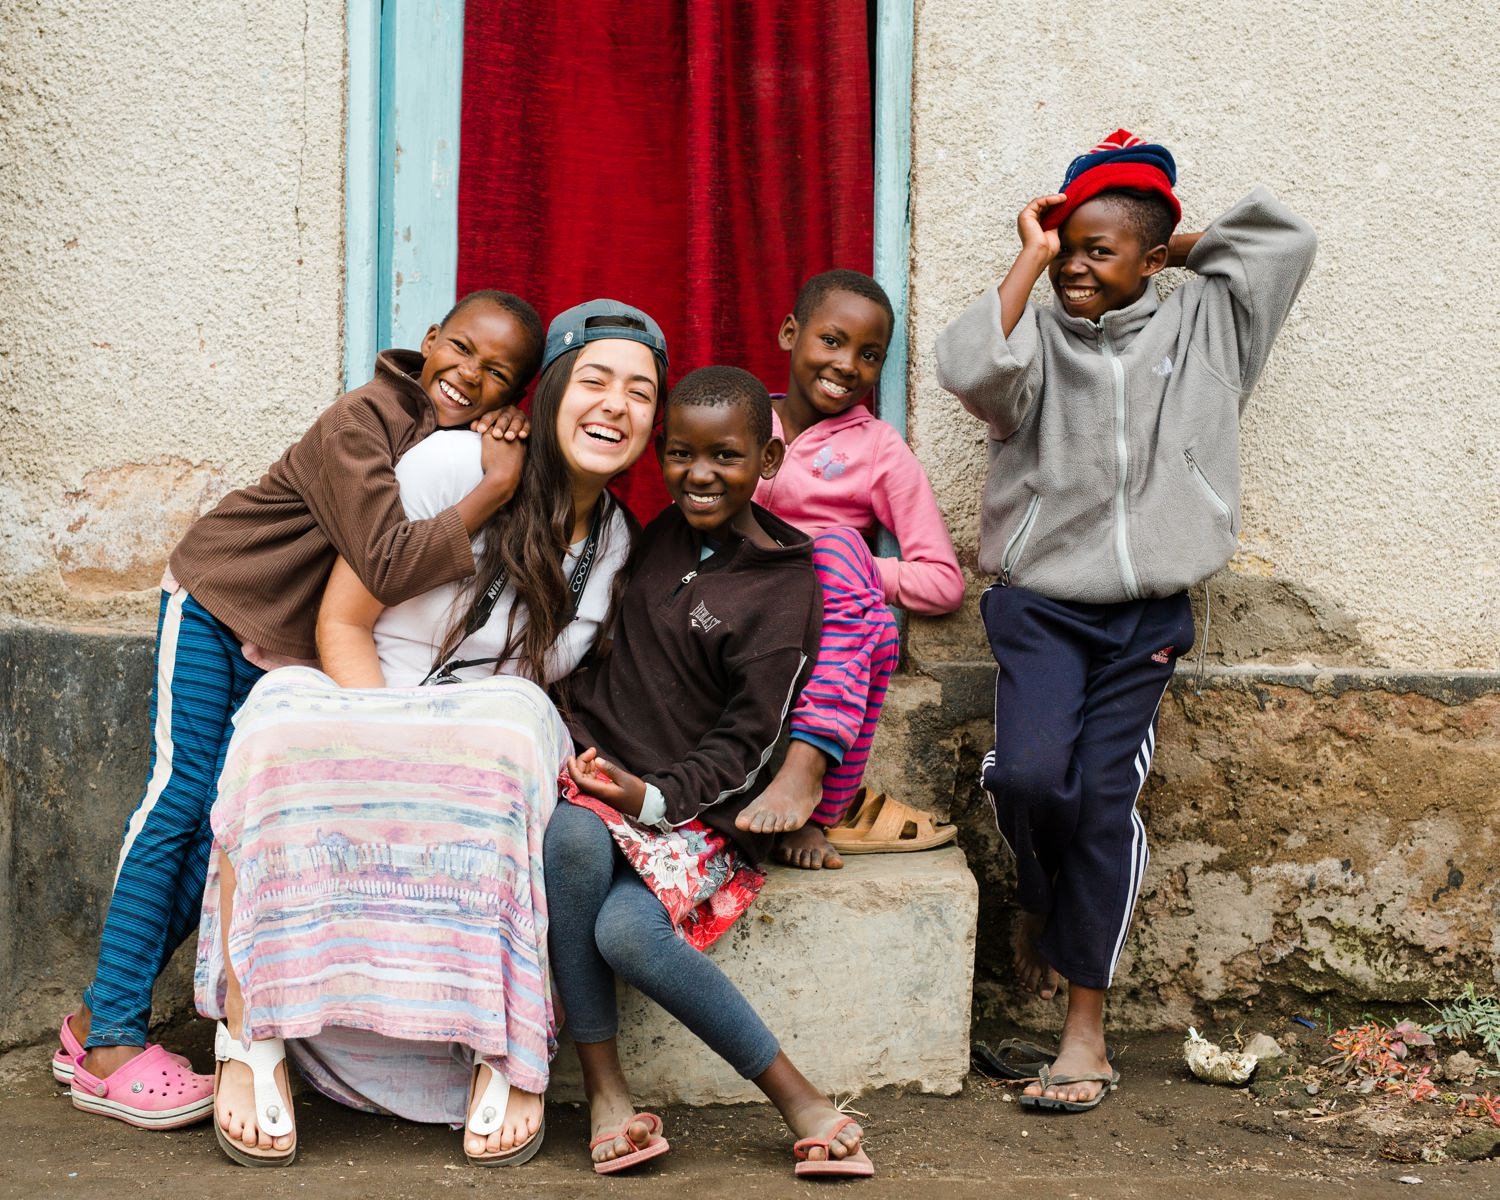 cameron-zegers-travel-photographer-tanzania-national-geographic-student-expeditions.jpg